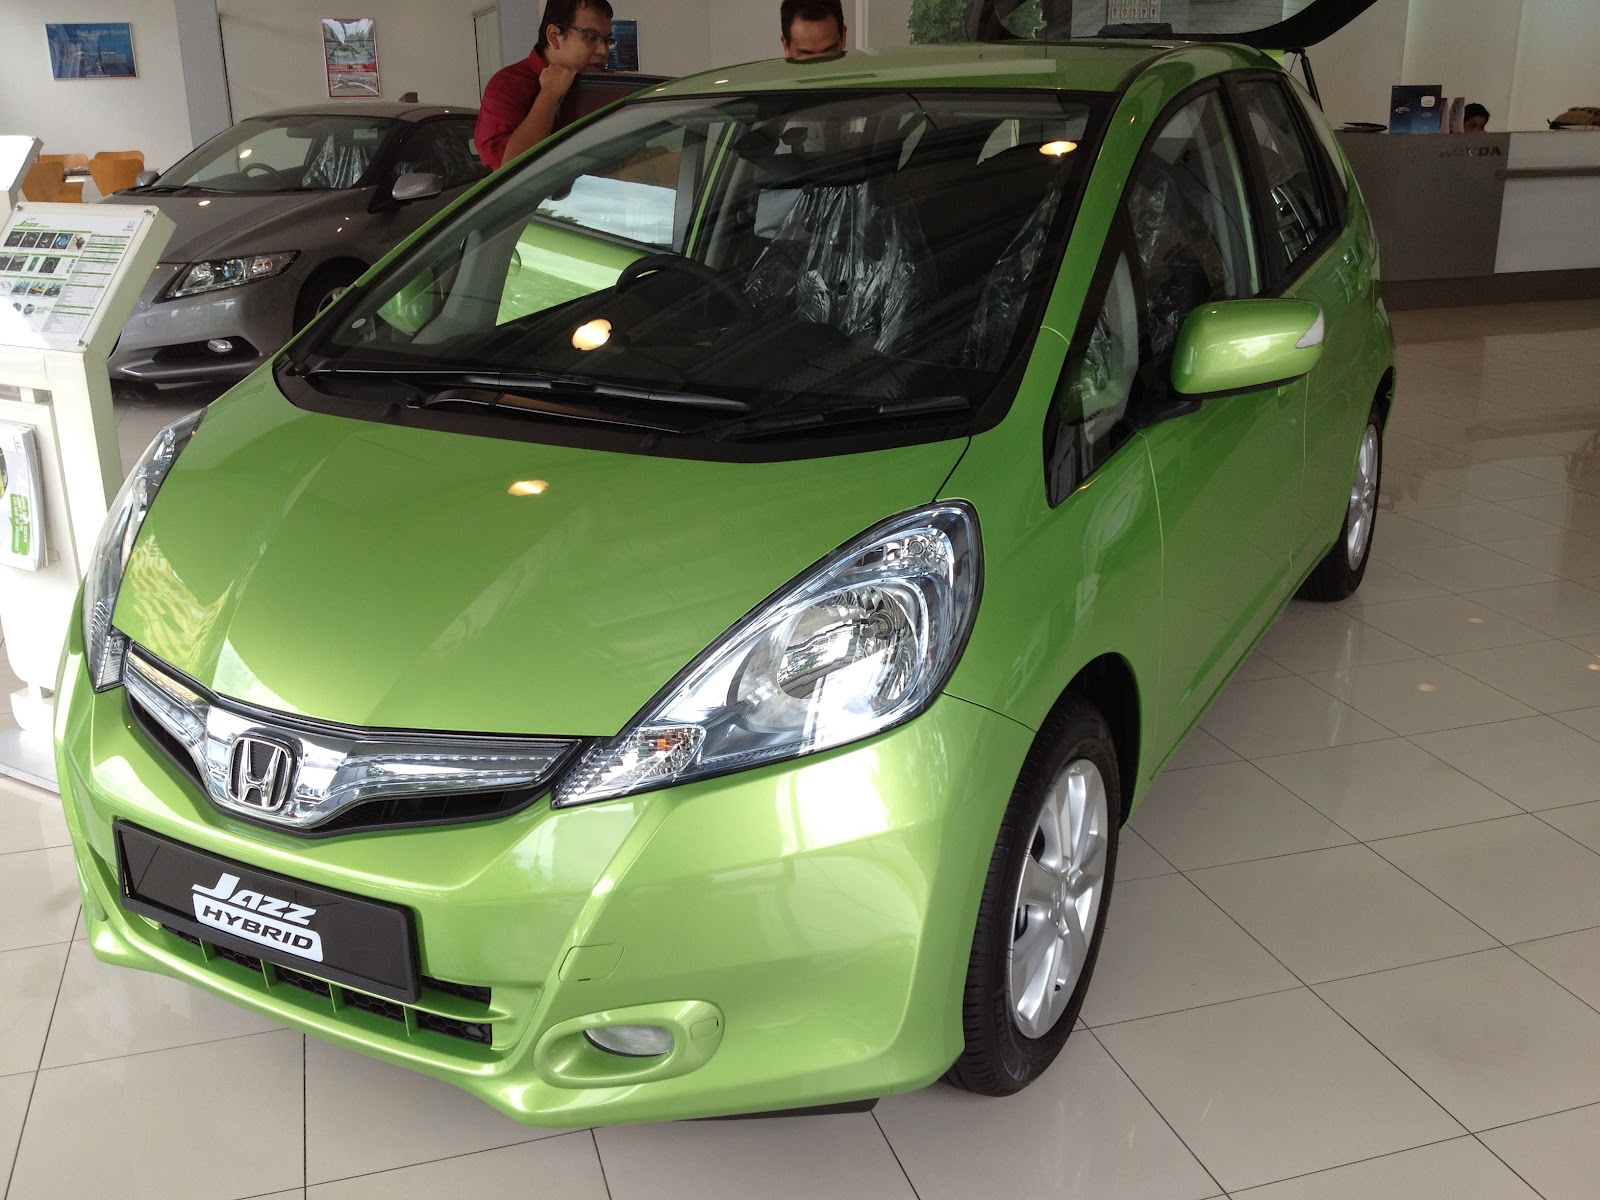 Toyota Prius C Vs Honda Jazz Hybrid The Battle For The Most